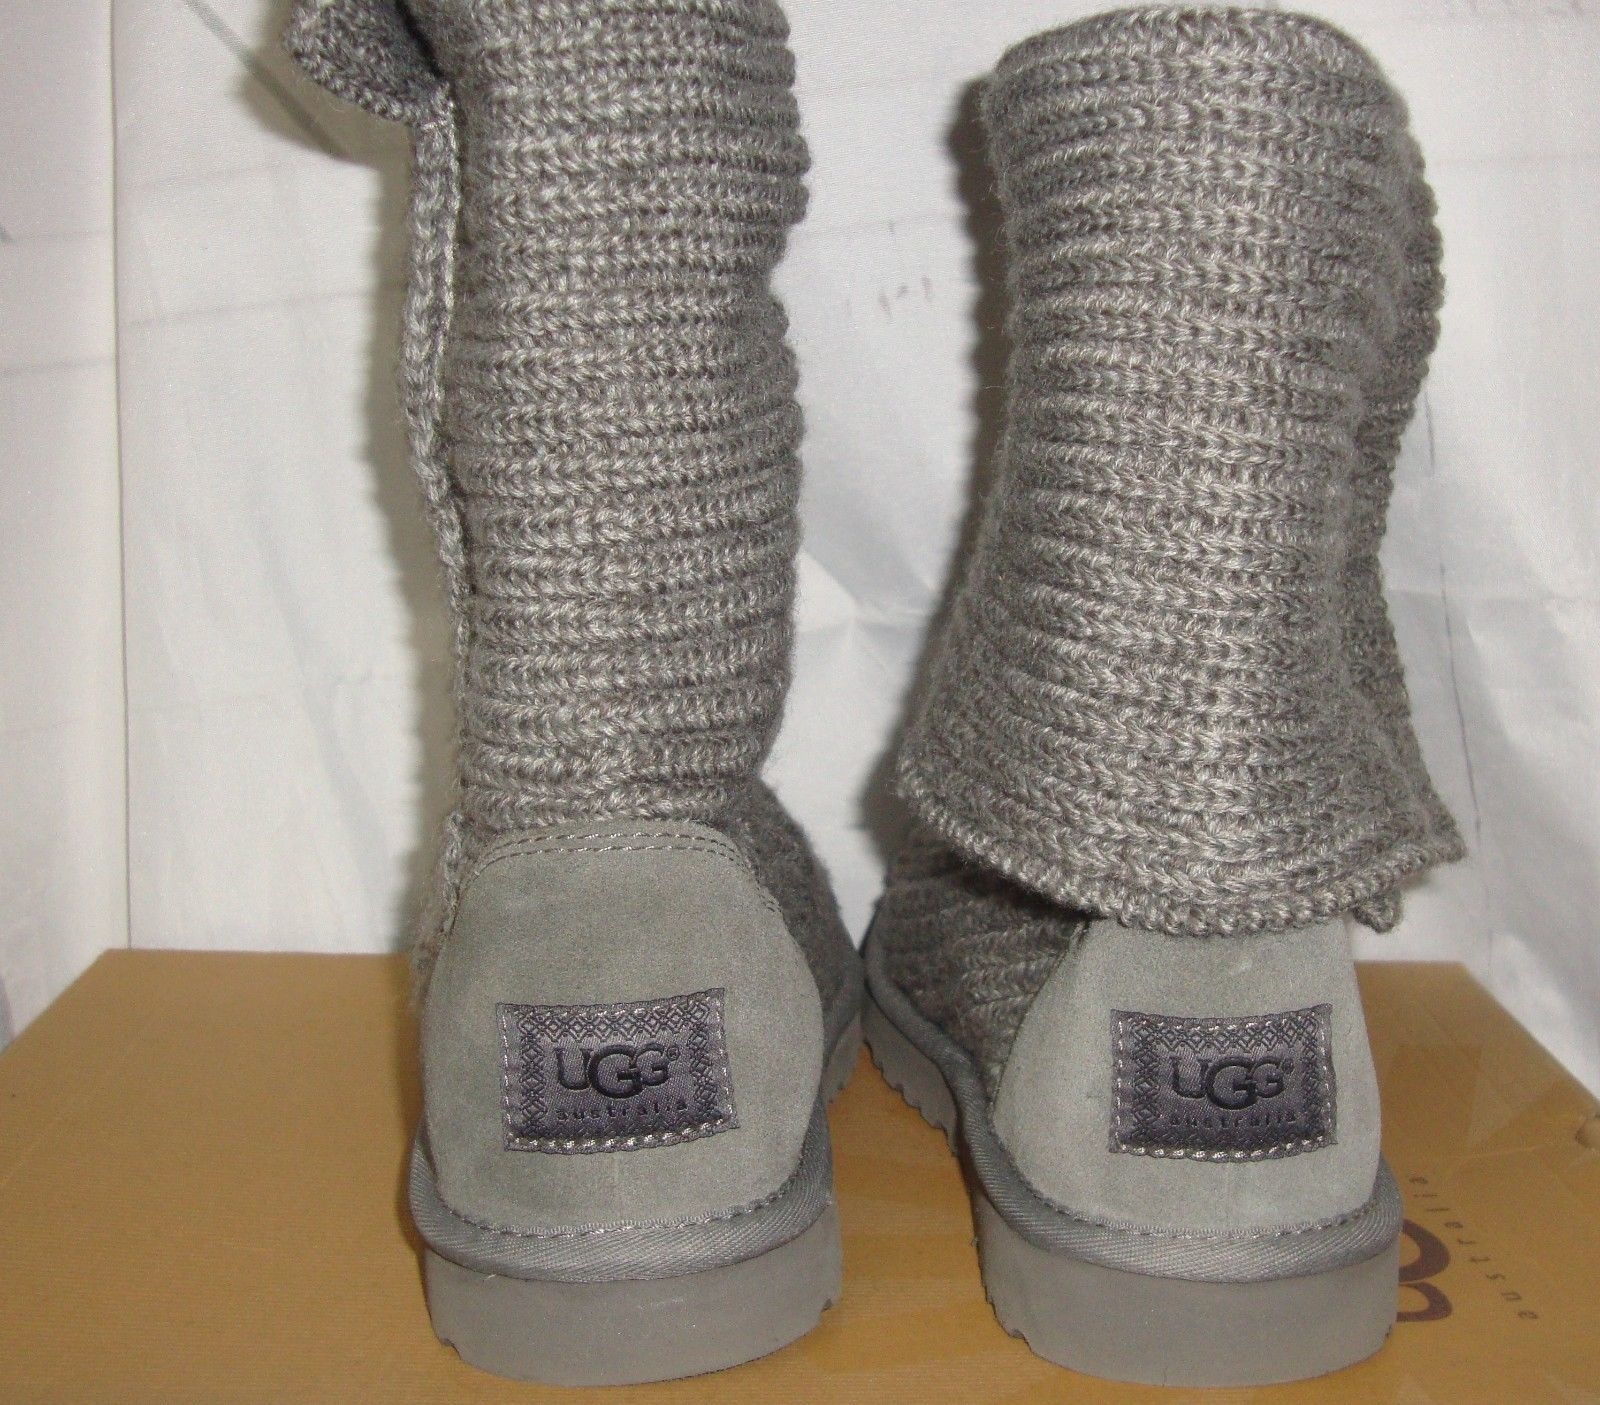 40d205a7857 UGG Australia Grey Gray Classic Cardy Knit and similar items